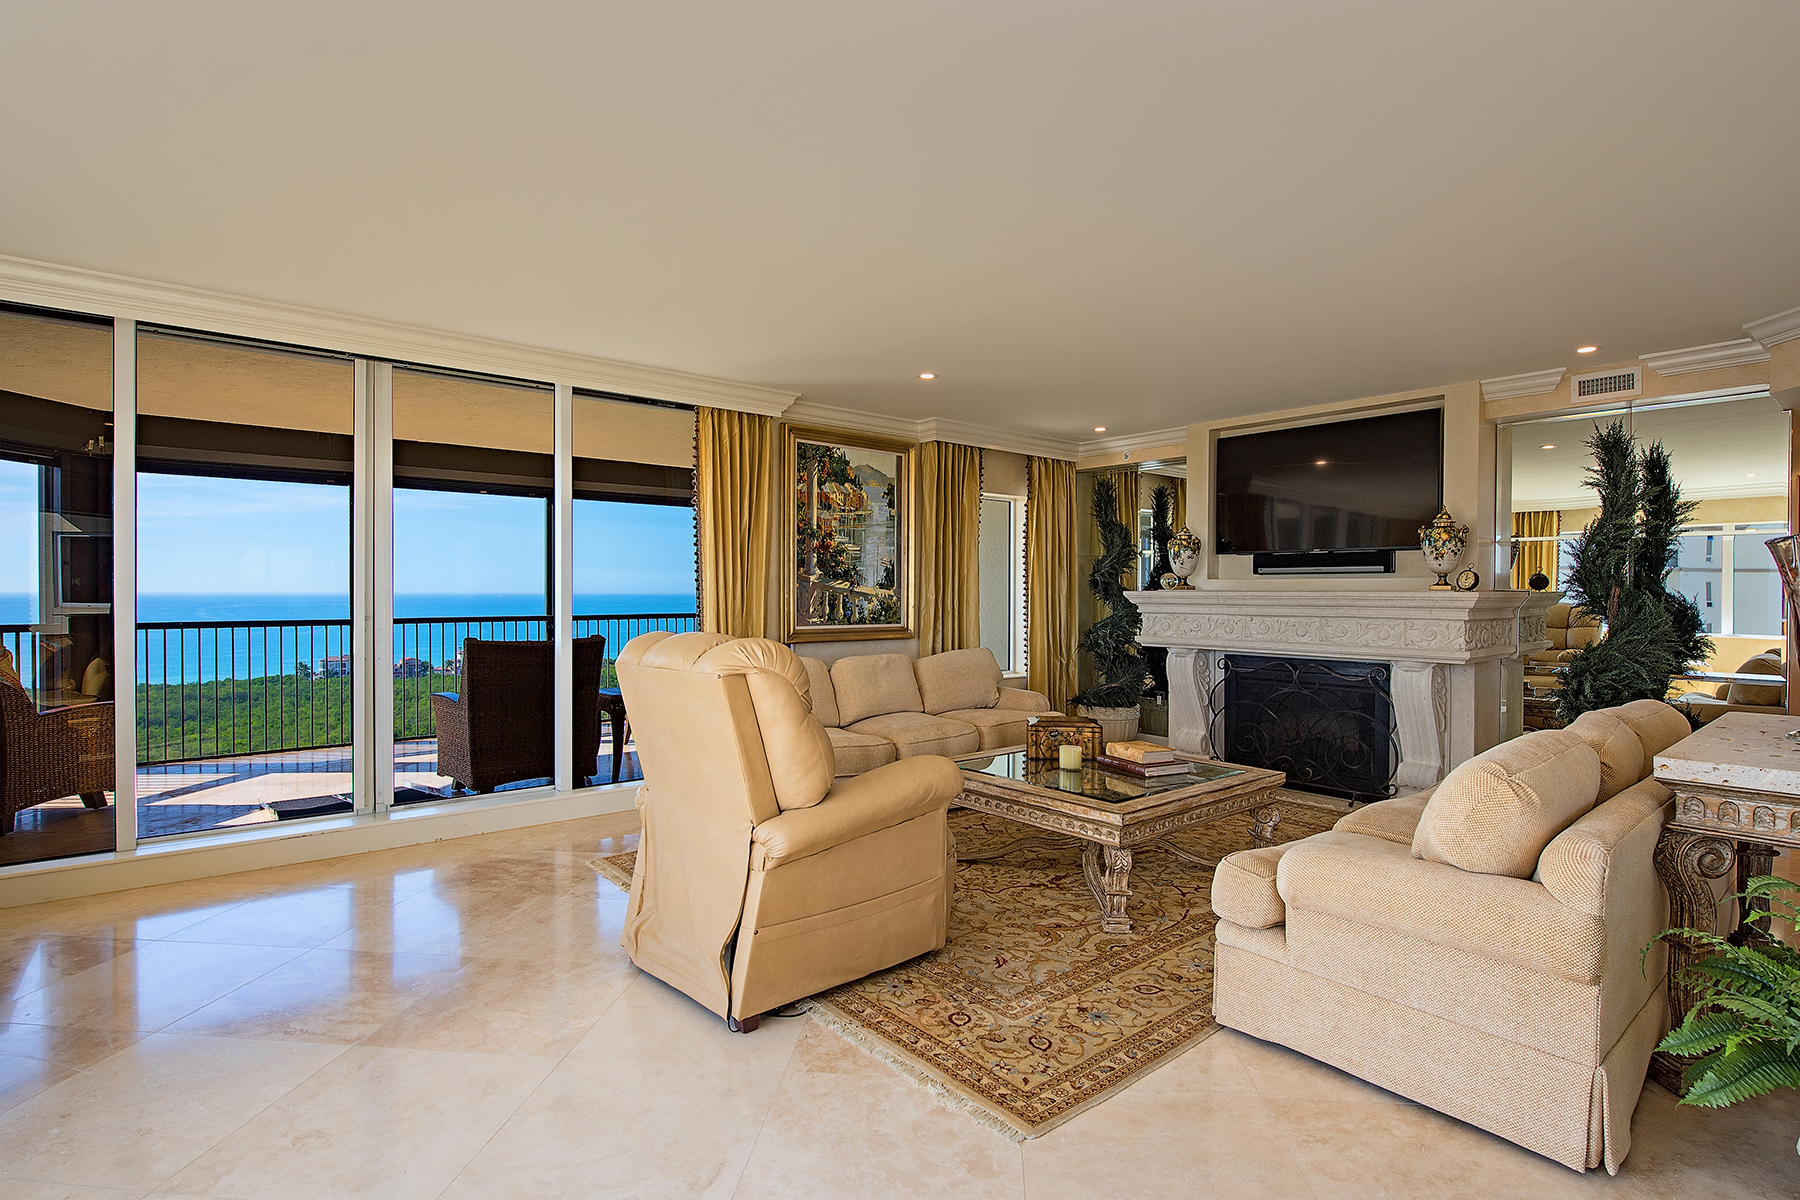 Additional photo for property listing at PELICAN BAY - MARBELLA 7425  Pelican Bay Blvd 2101/2102,  Naples, Florida 34108 United States